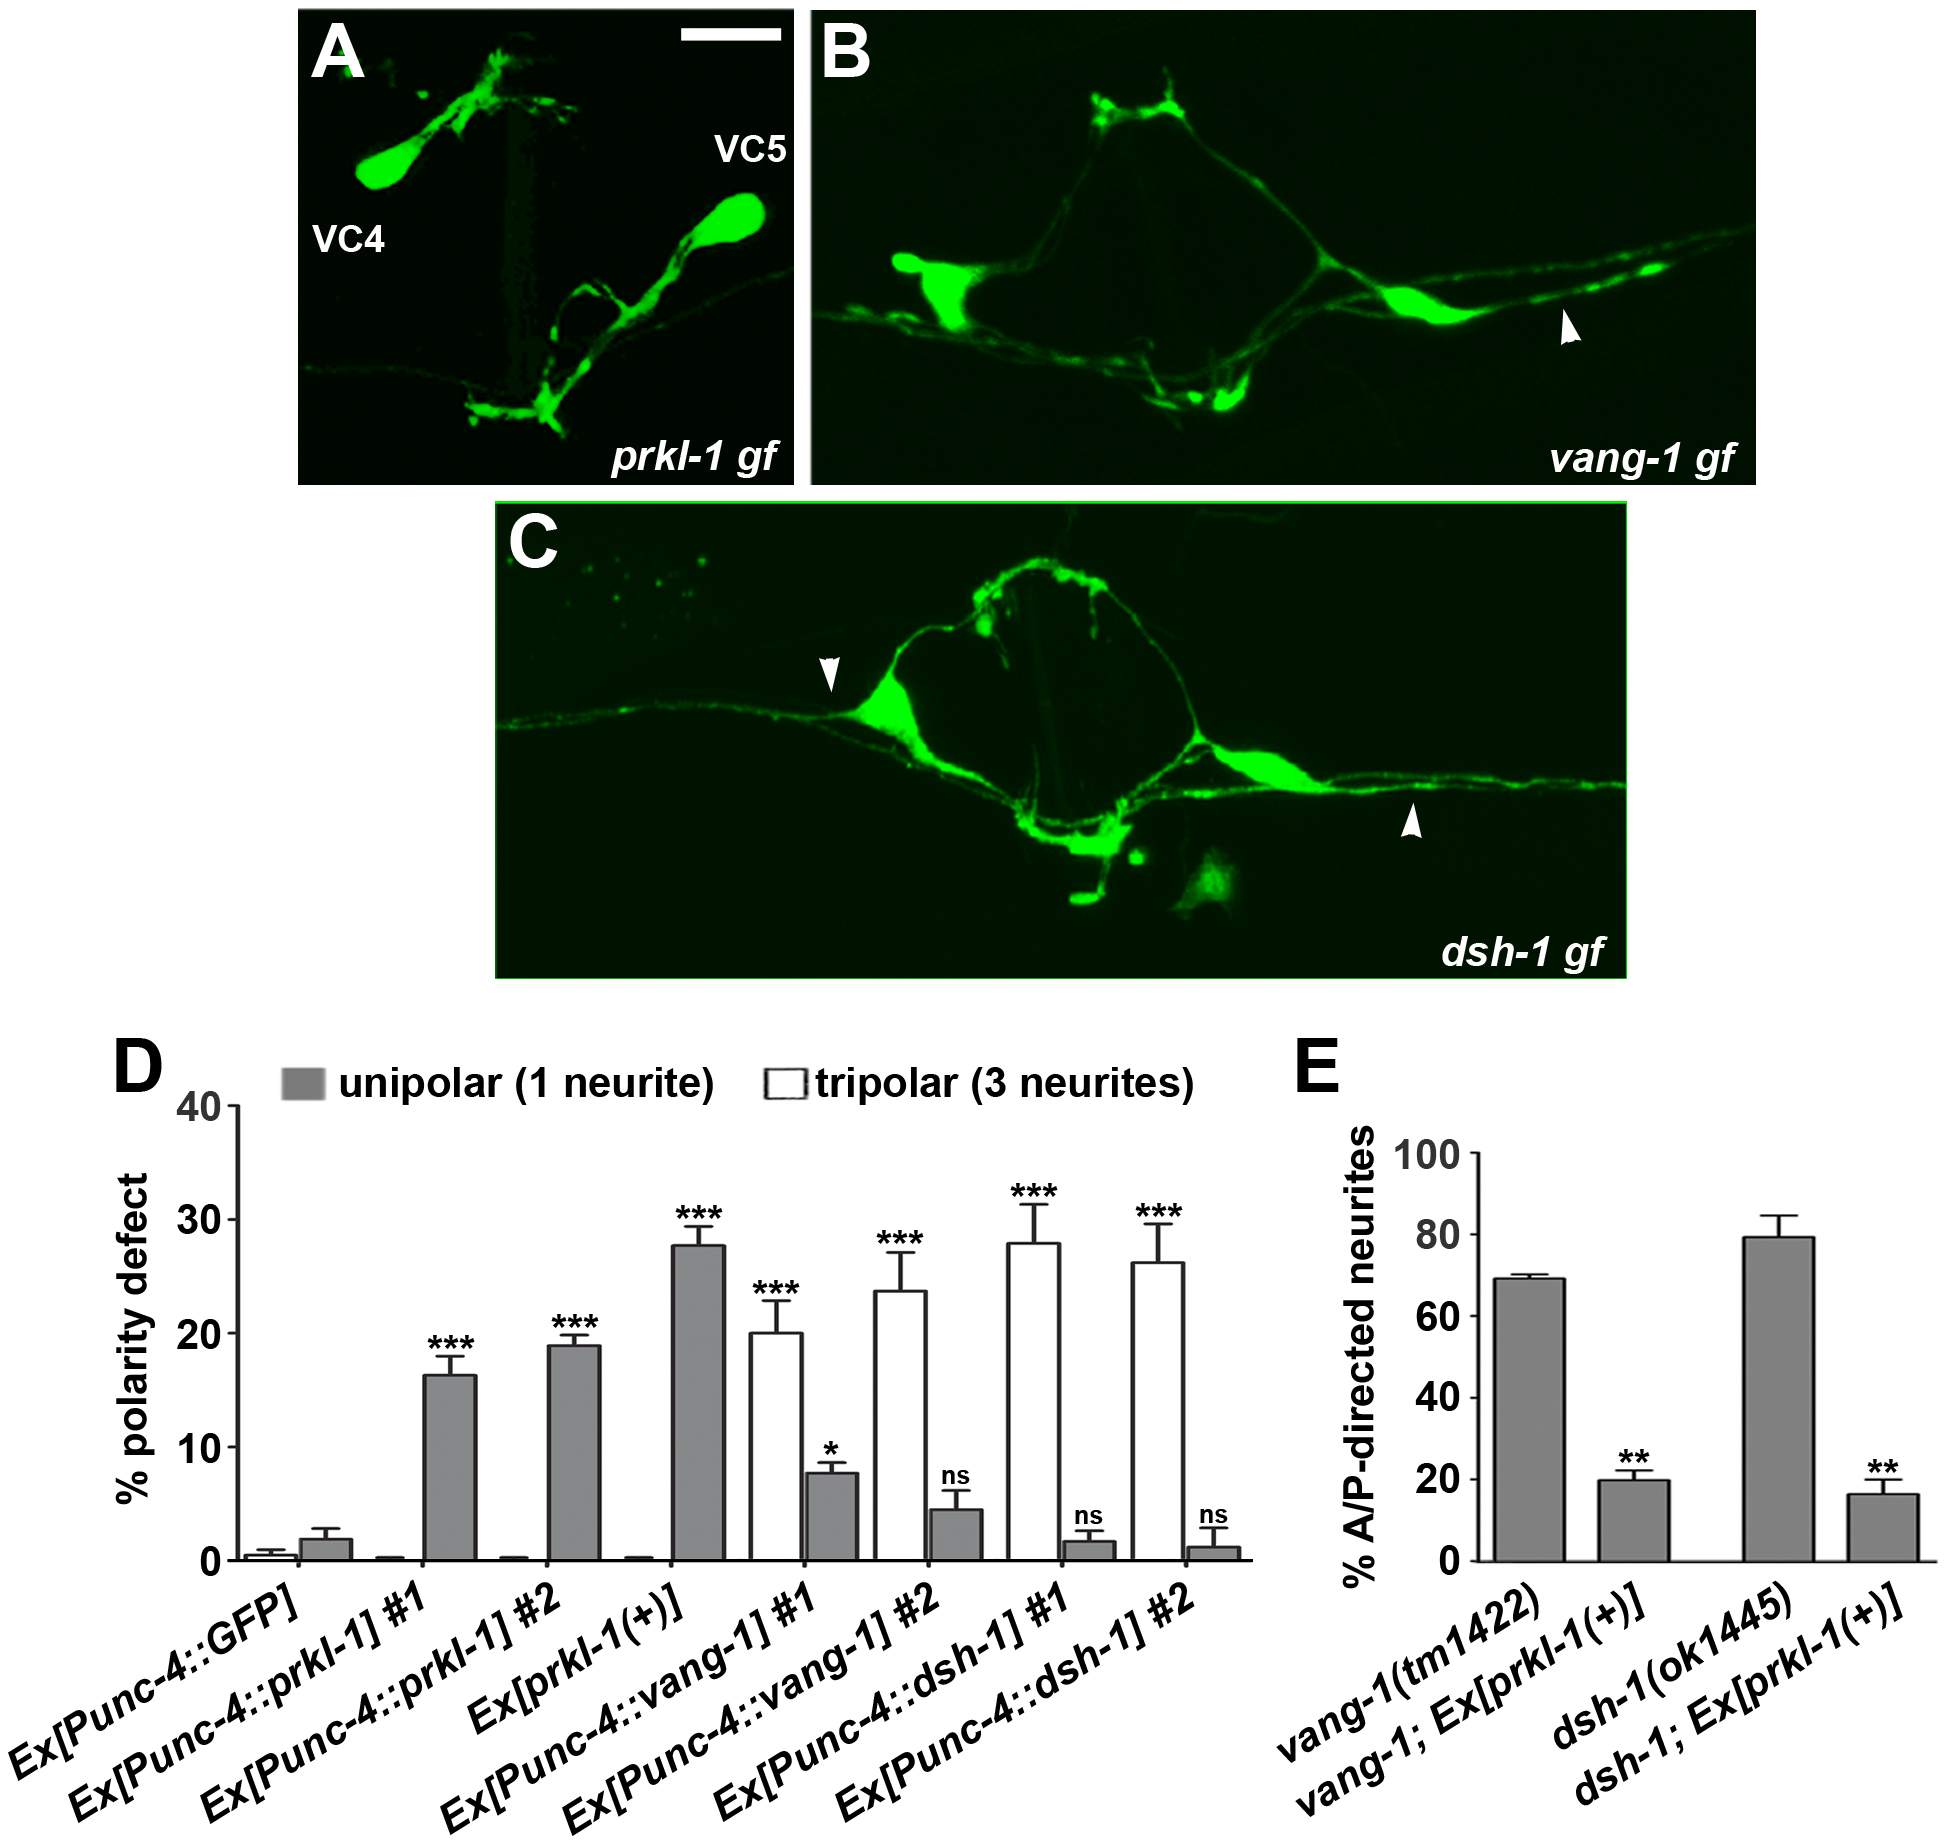 PRKL-1 is sufficient to suppress neurite formation in VC4 and VC5.